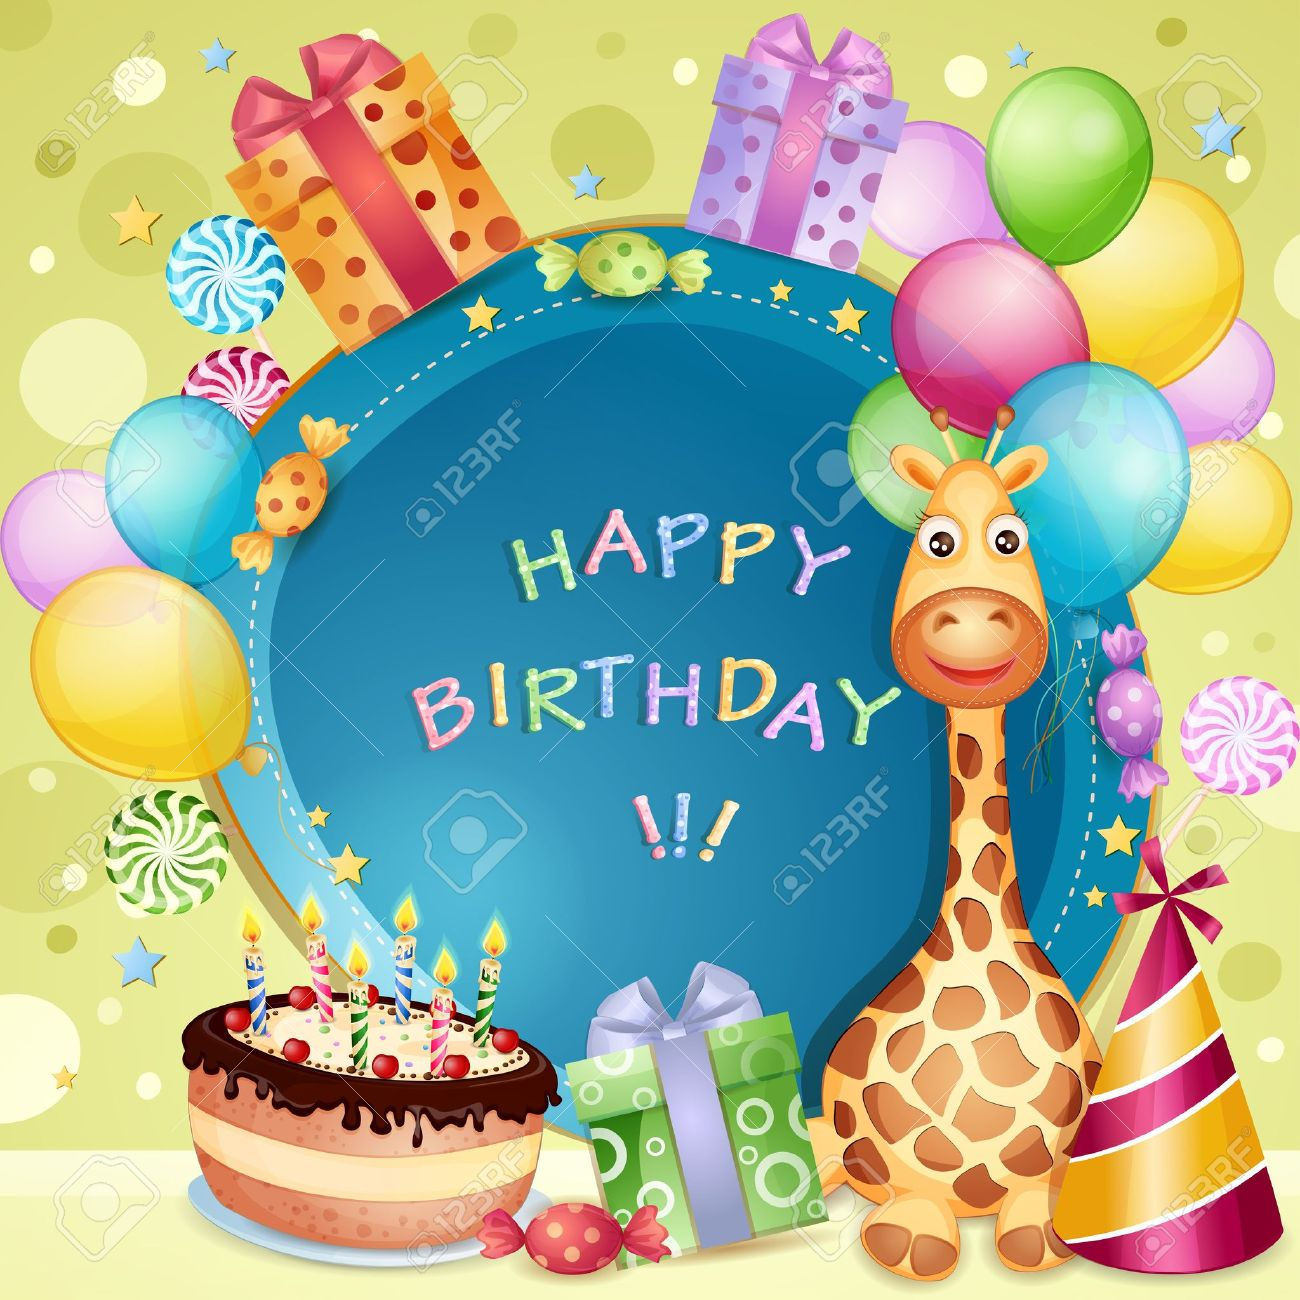 Birthday Card With Birthday Cake Balloons And Gifts Royalty Free